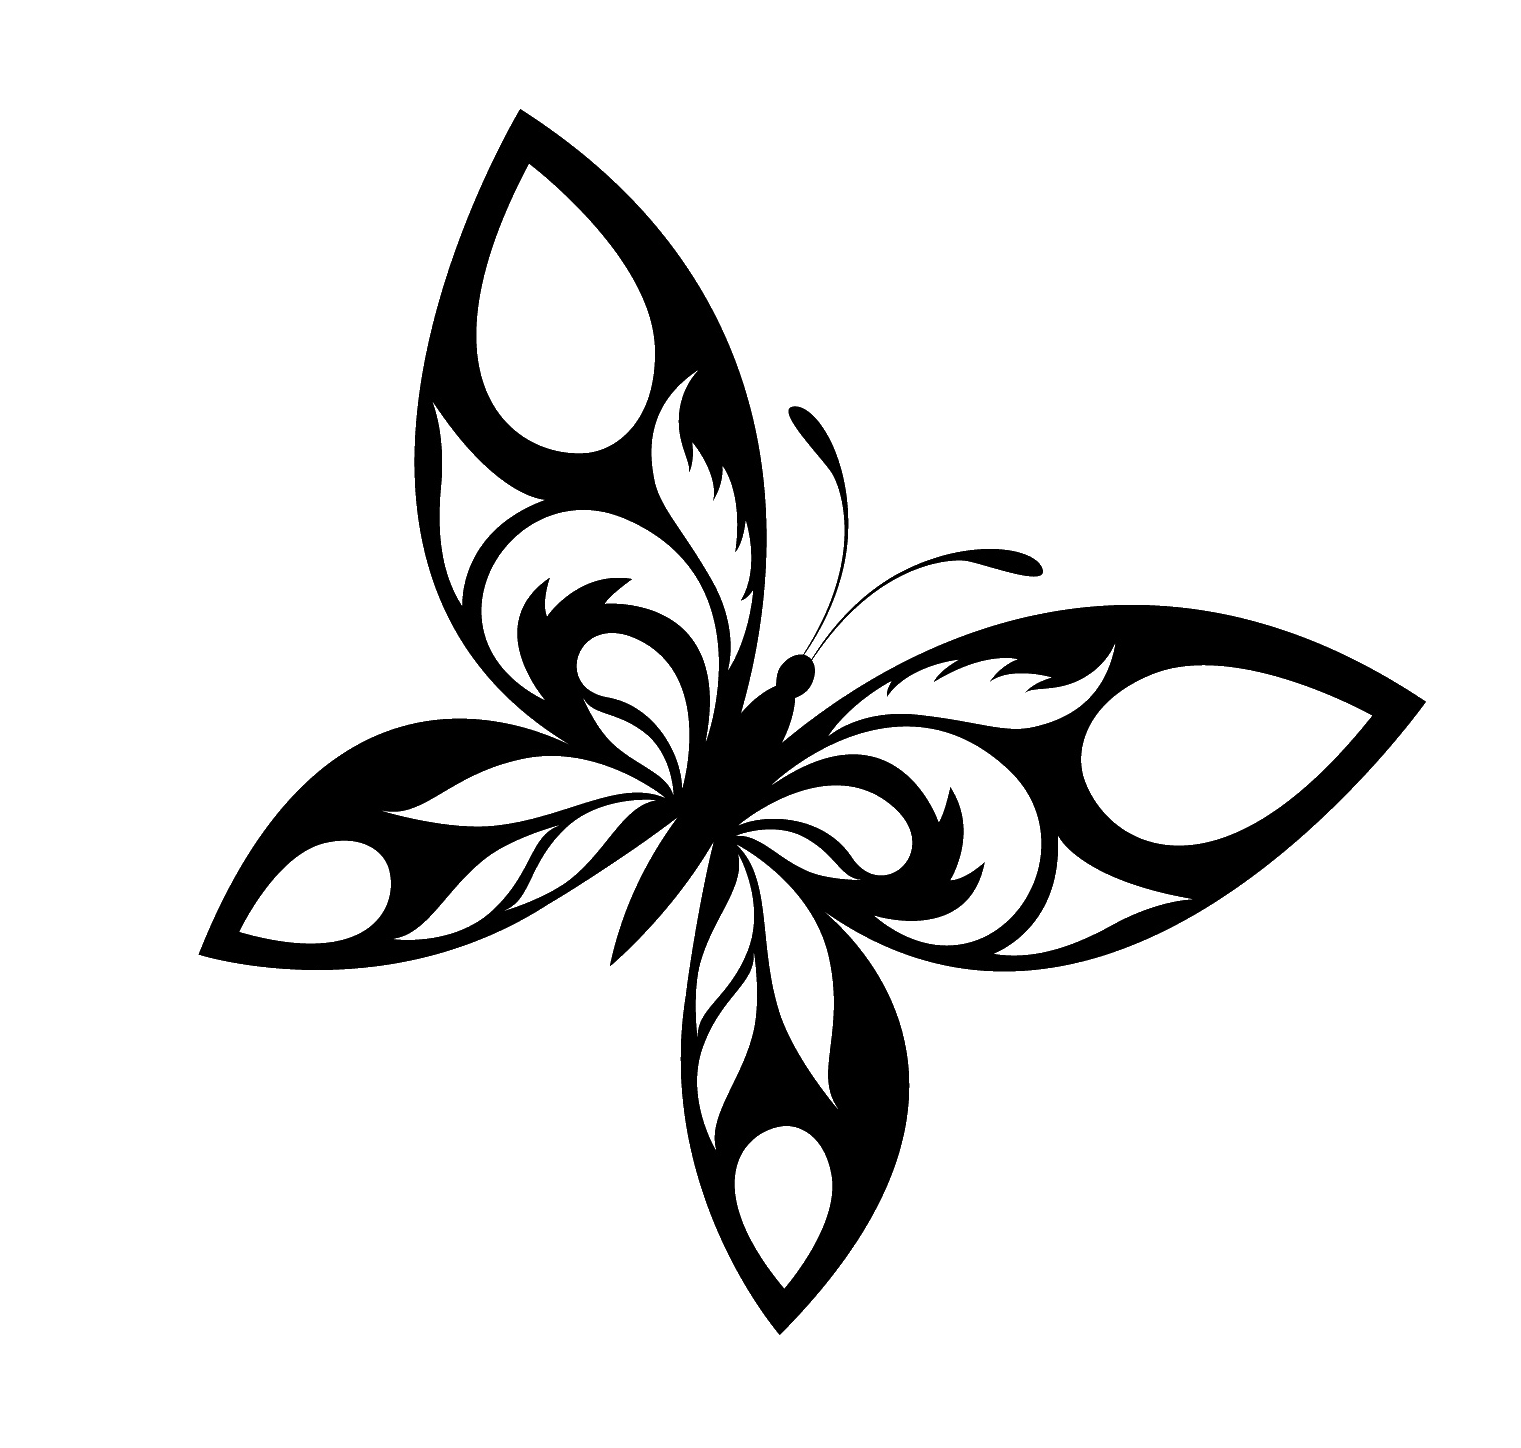 Download Butterfly Tattoo Designs PNG images transparent gallery.  Advertisement - Tattoo Designs PNG